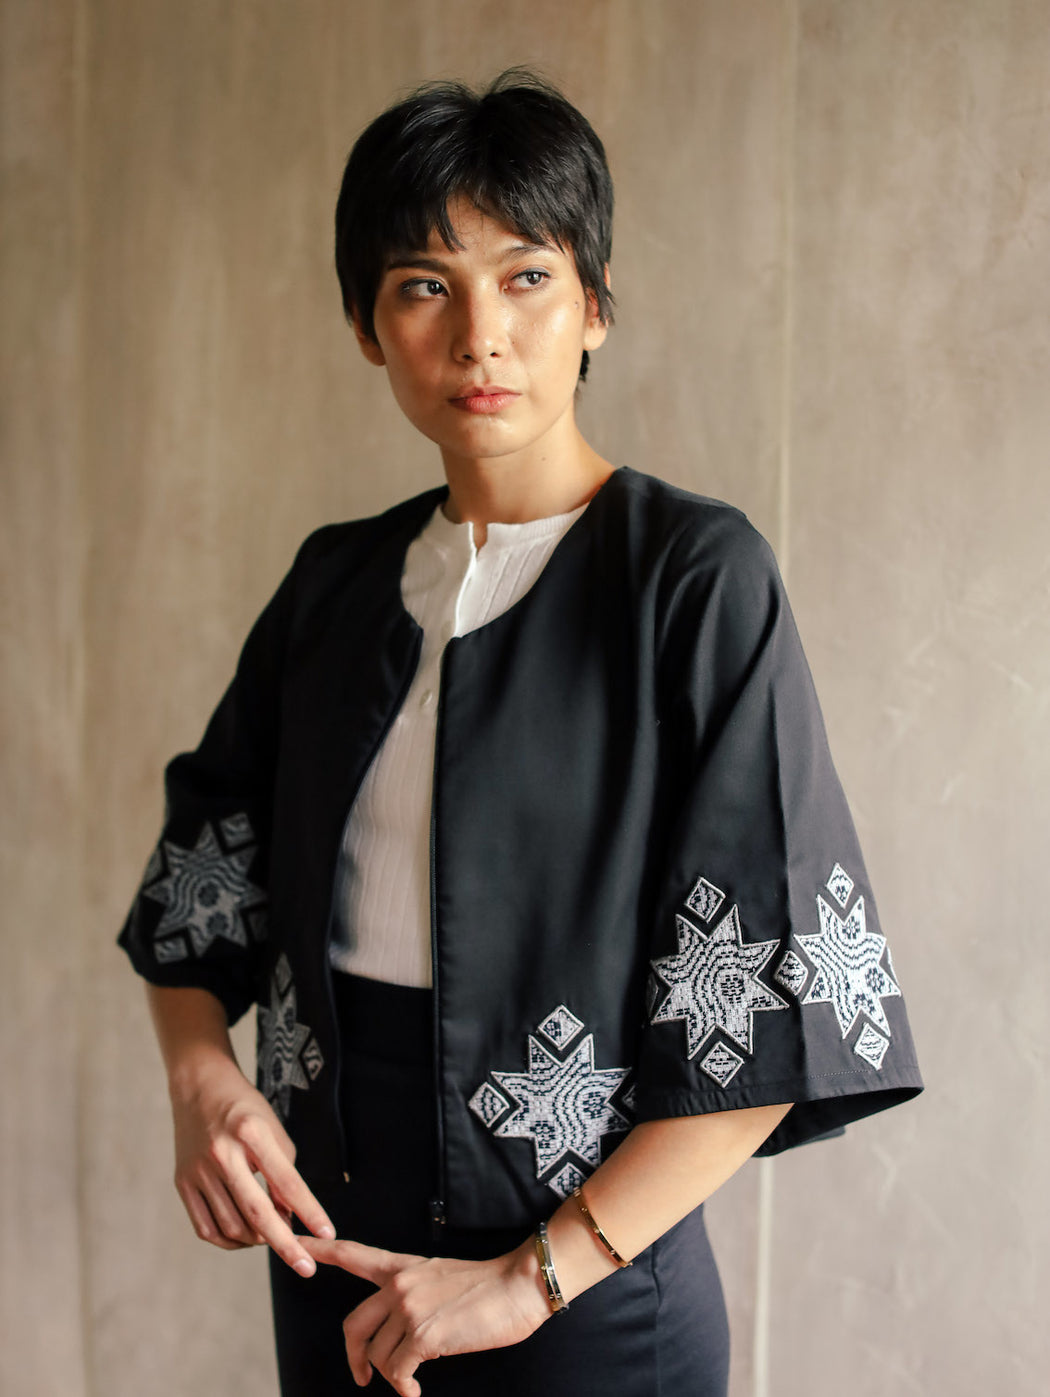 Amelia Embroidered Jacket - Black and Grey